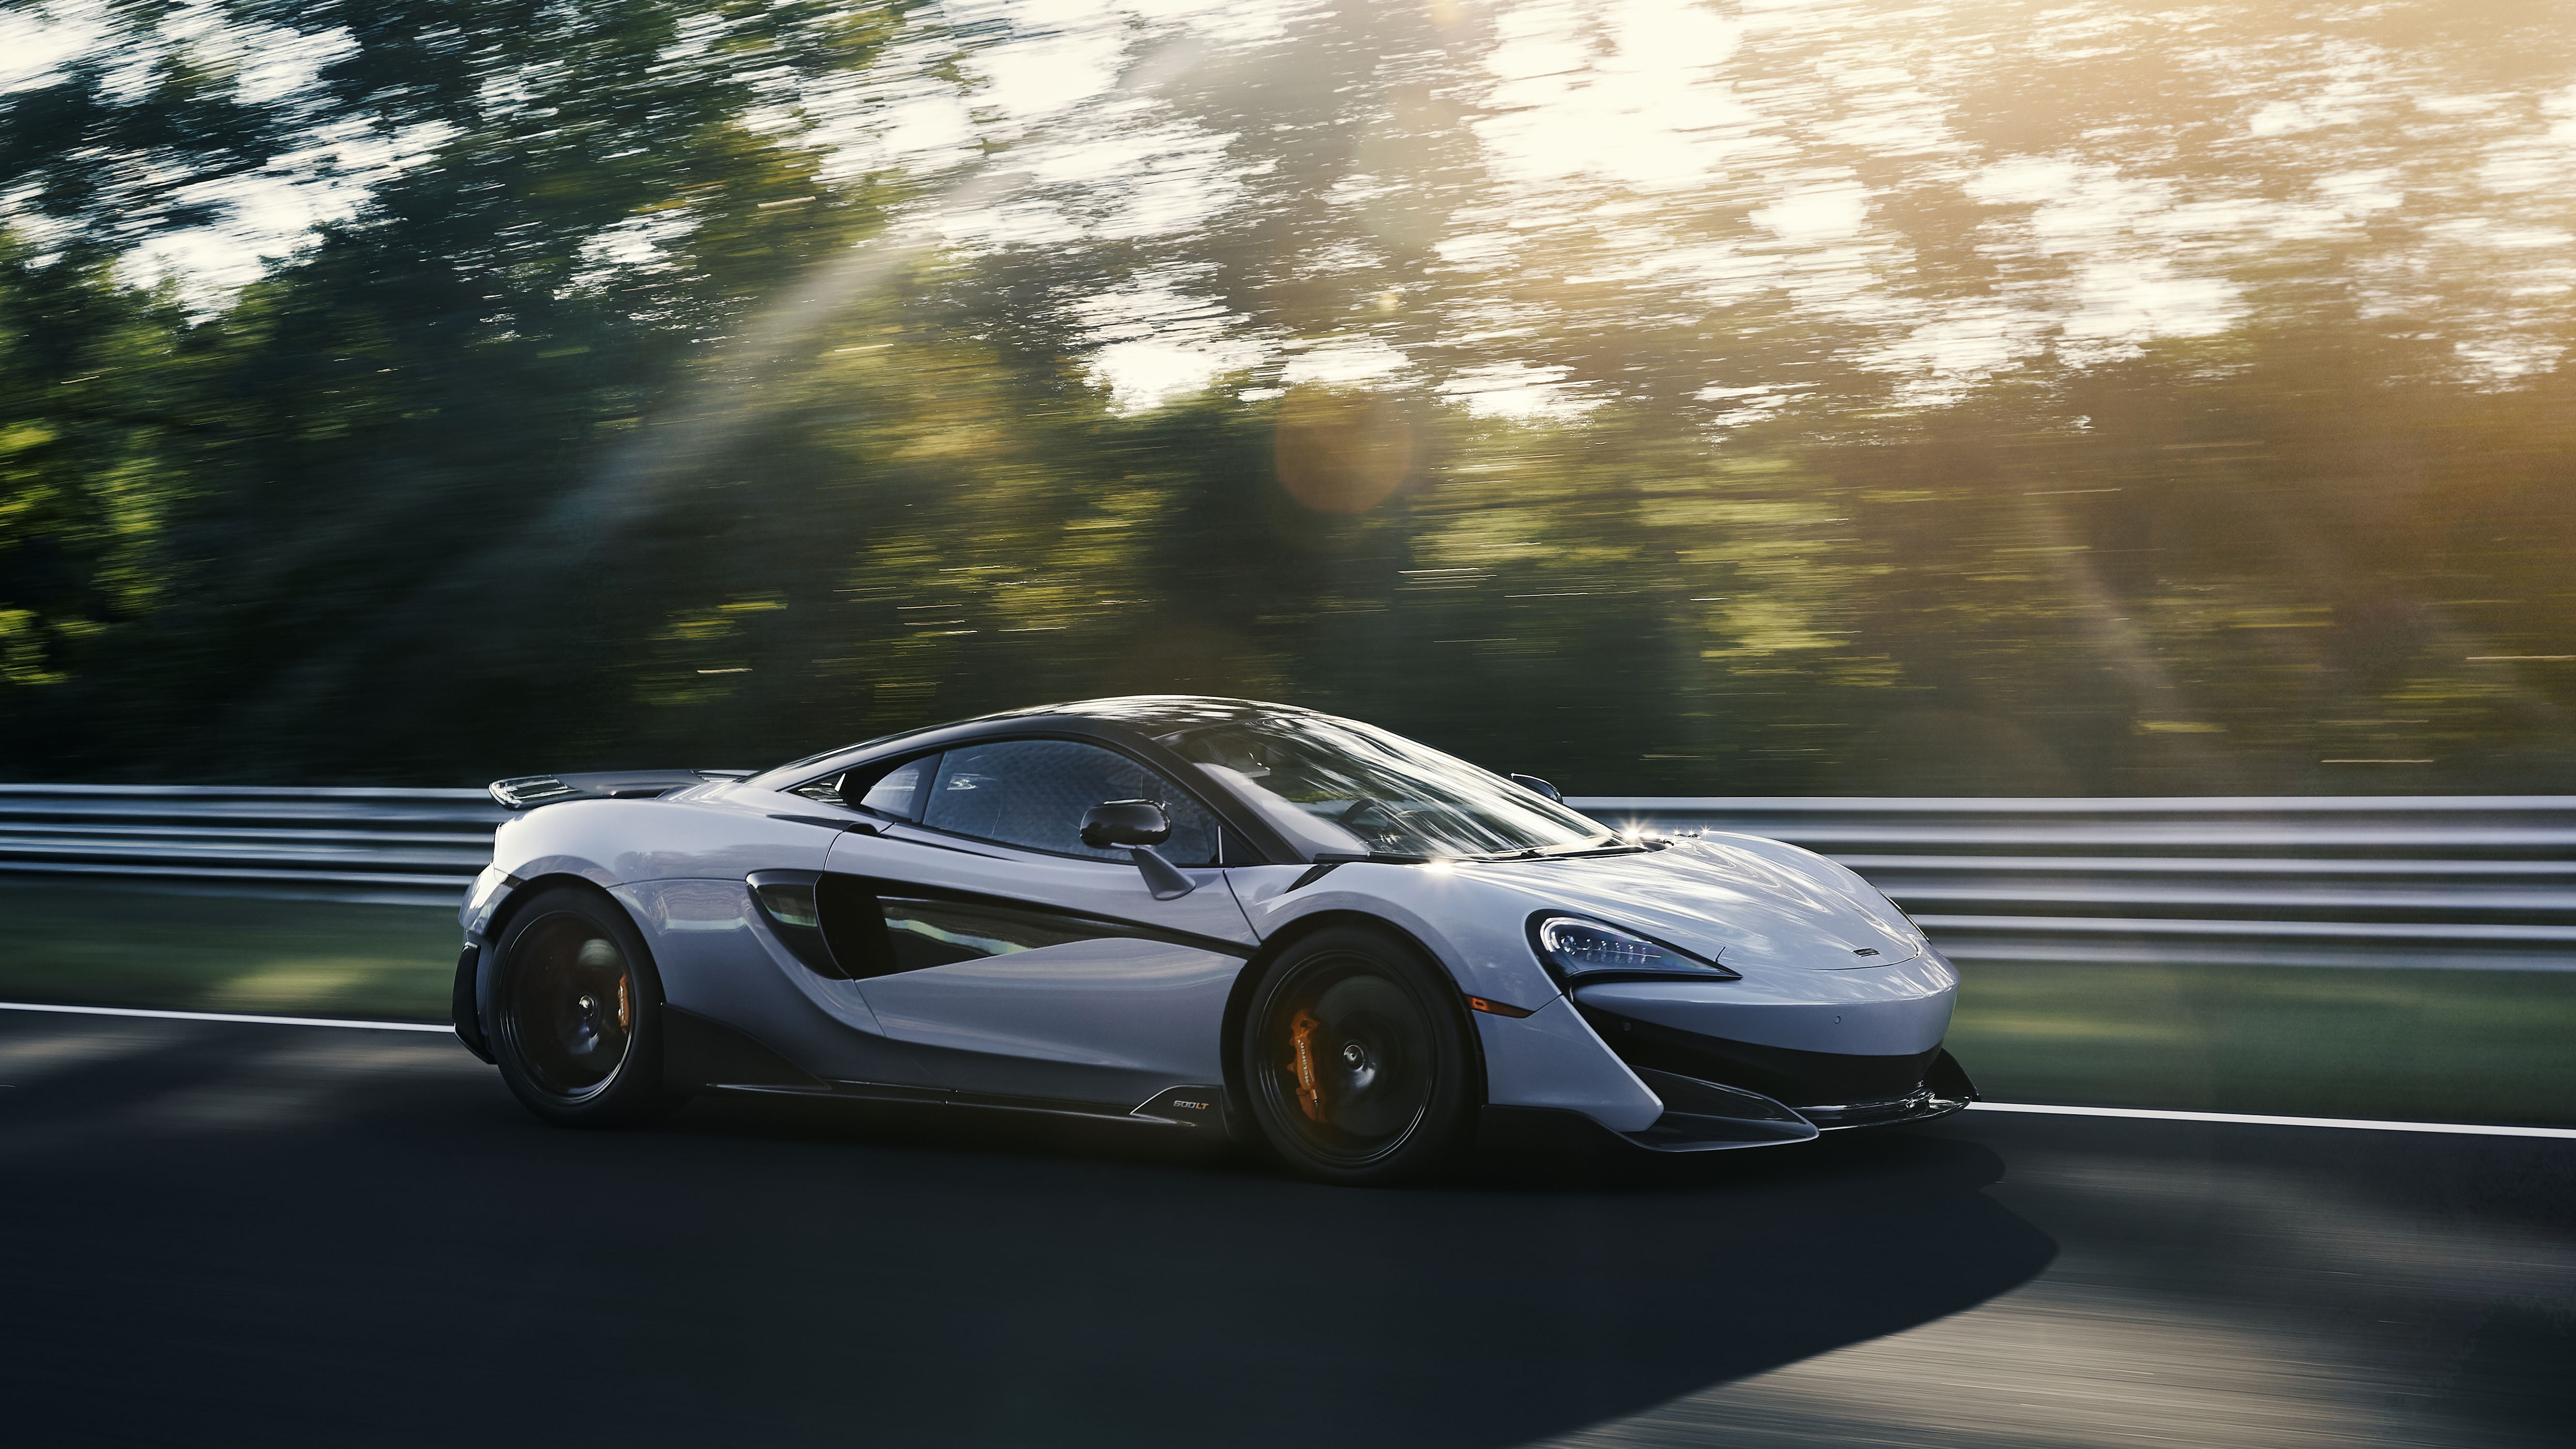 The Best Mclaren Cars Of All Time